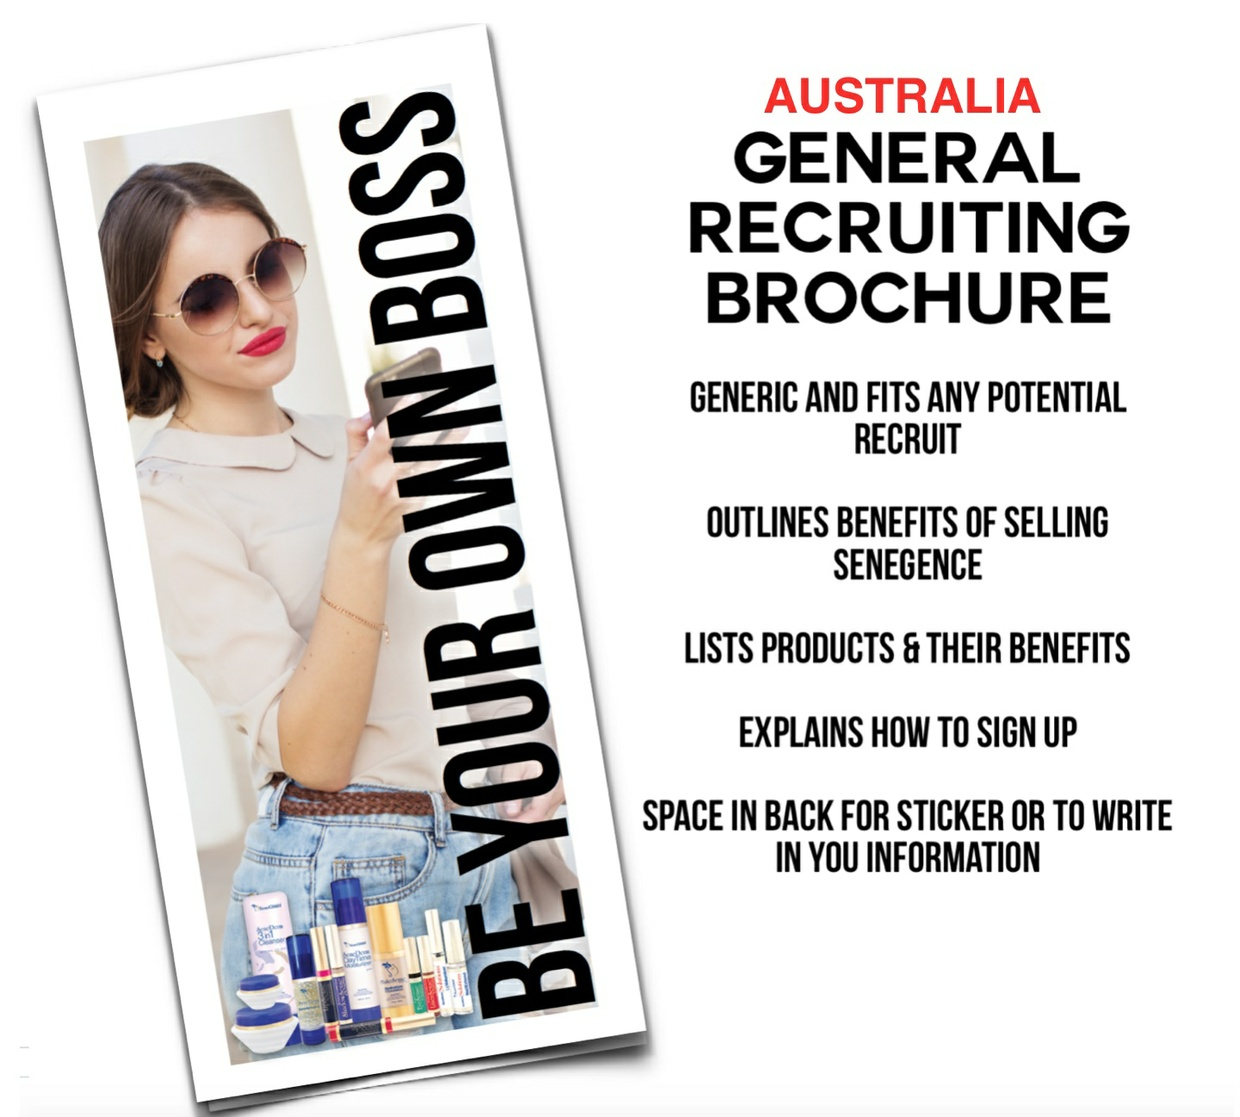 AUS - General Recruiting Brochure